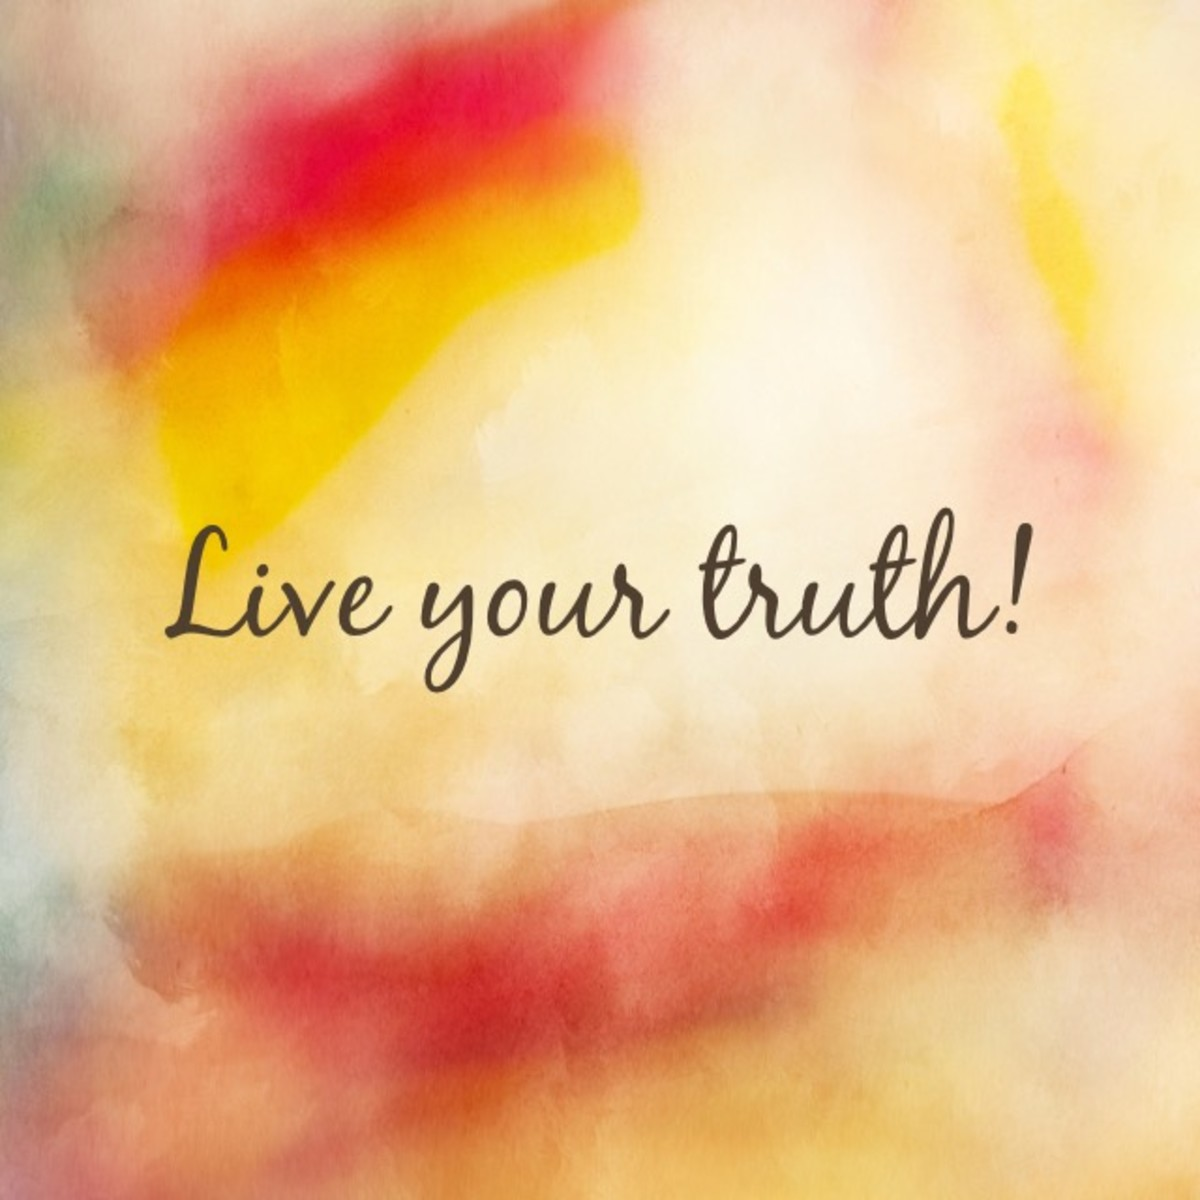 What It Means to Live Your Truth